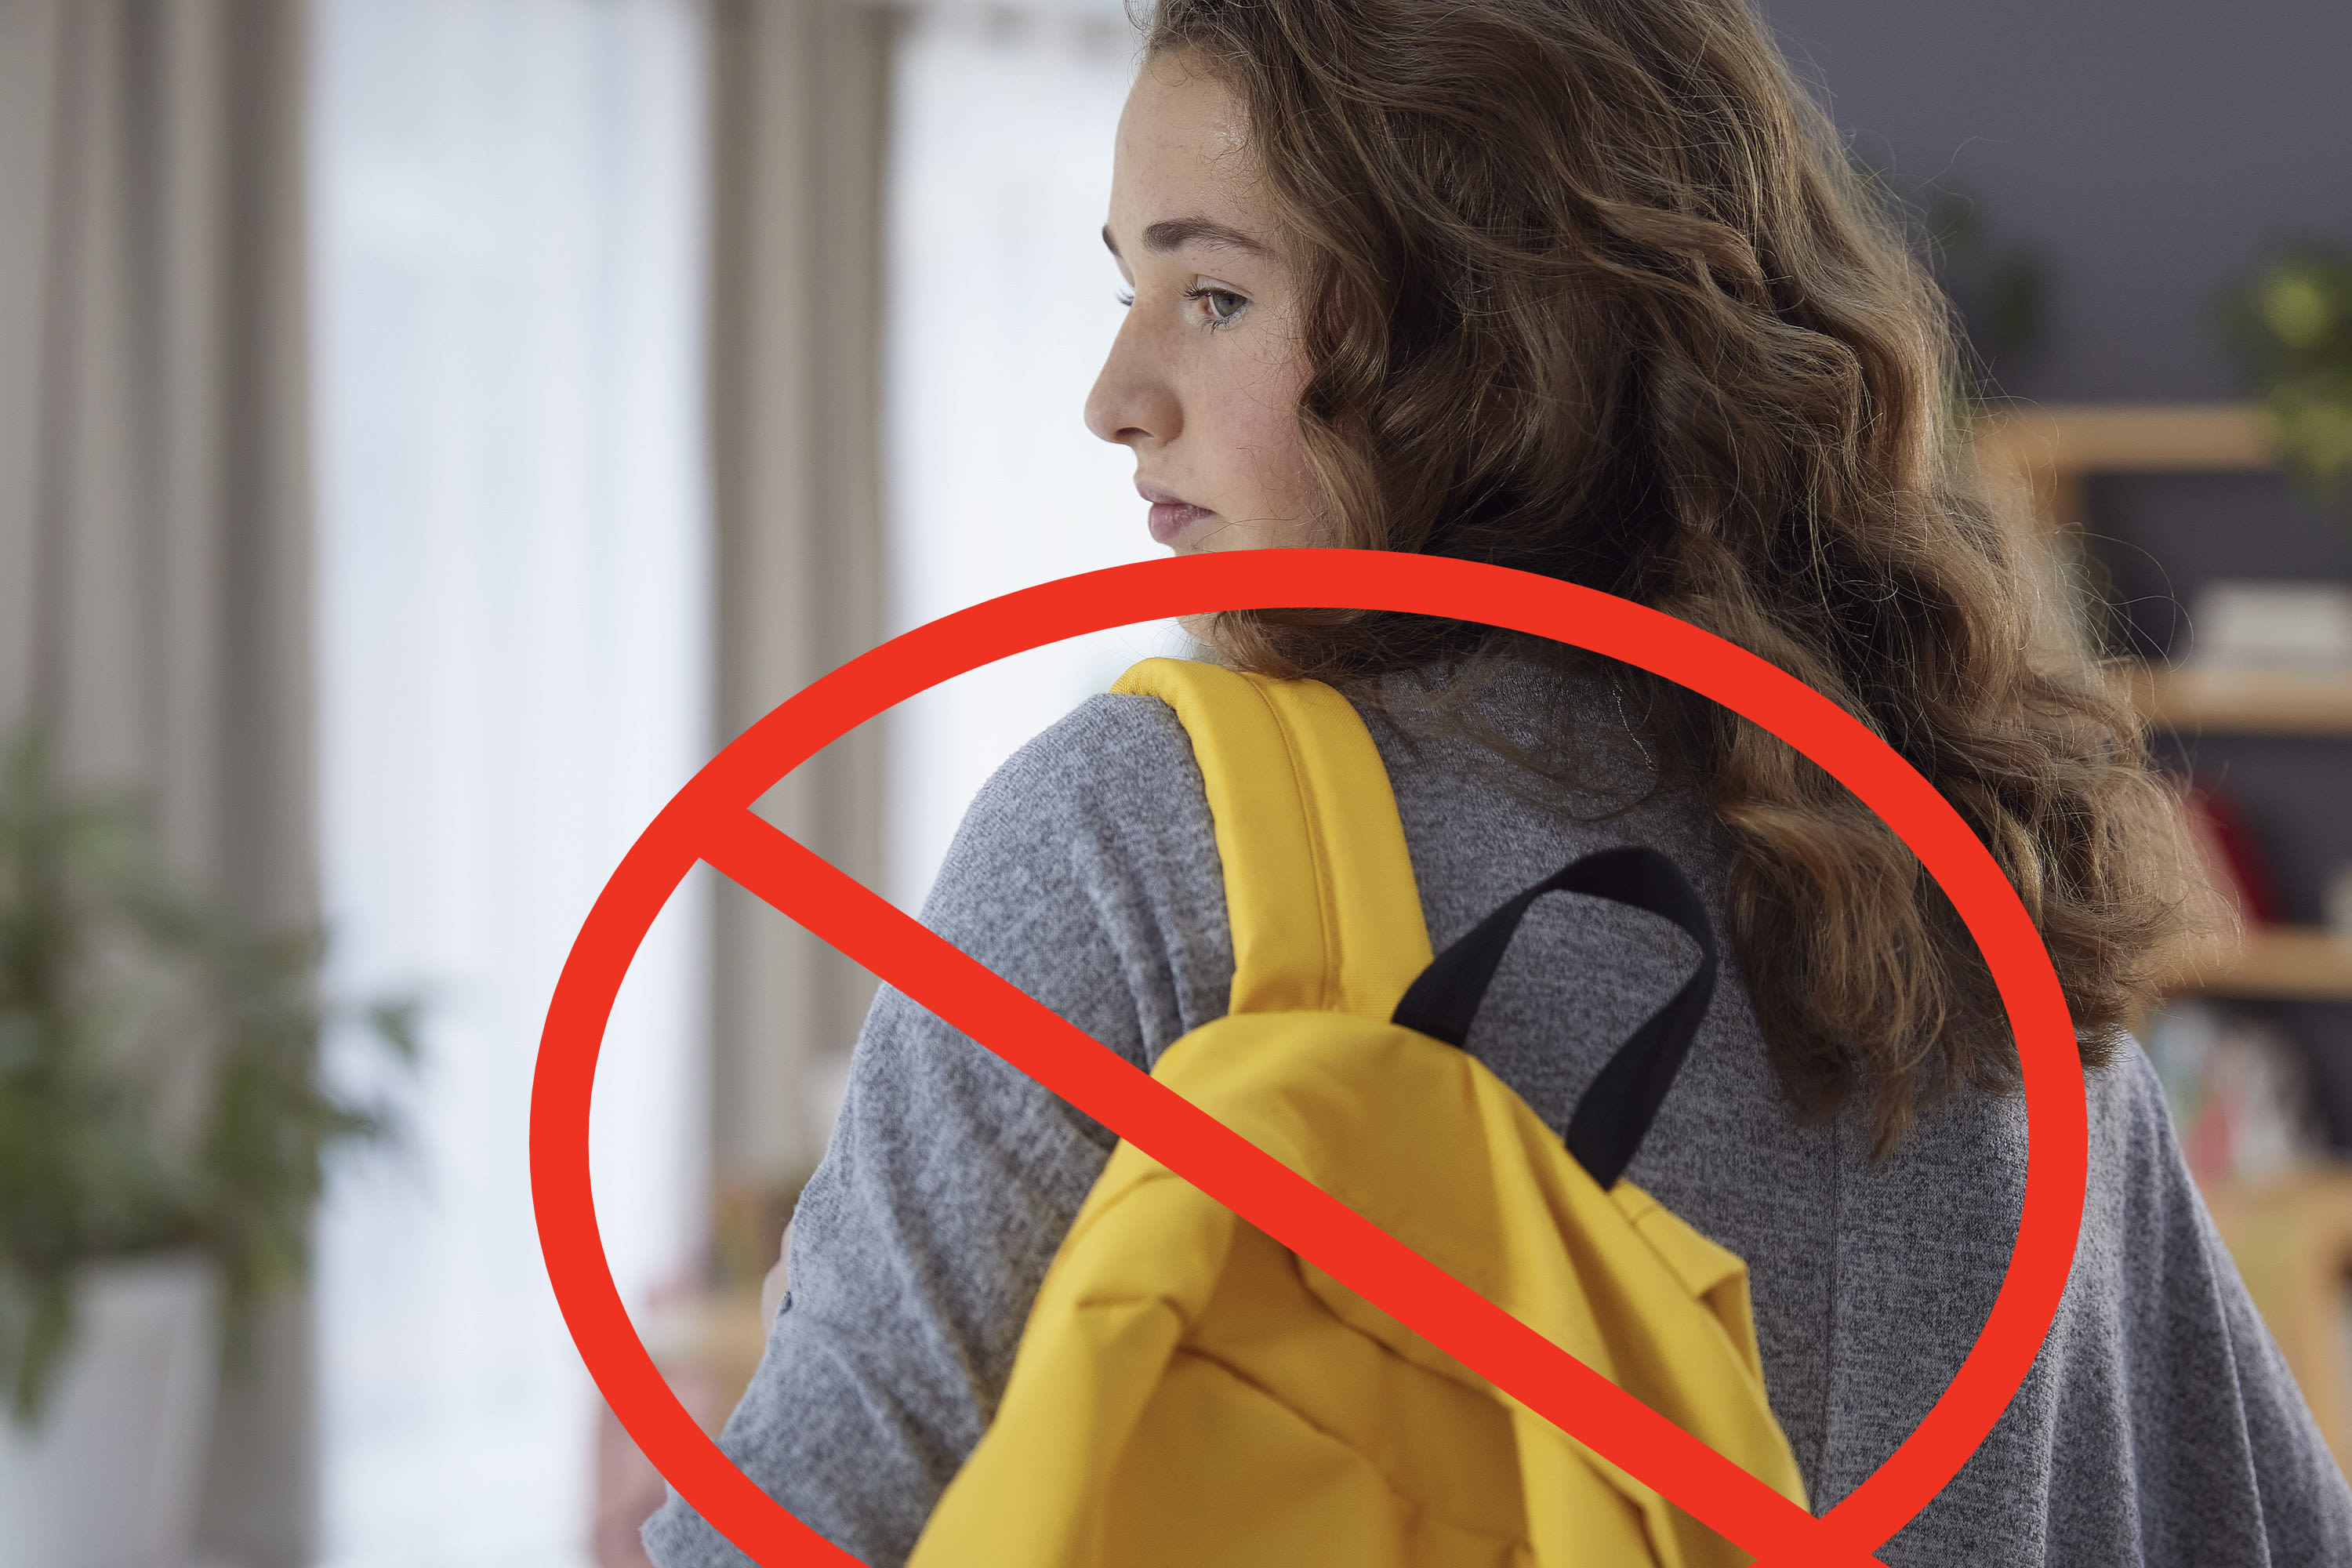 A teen carrying a backpack with a circle and line crossing it out superimposed upon the image